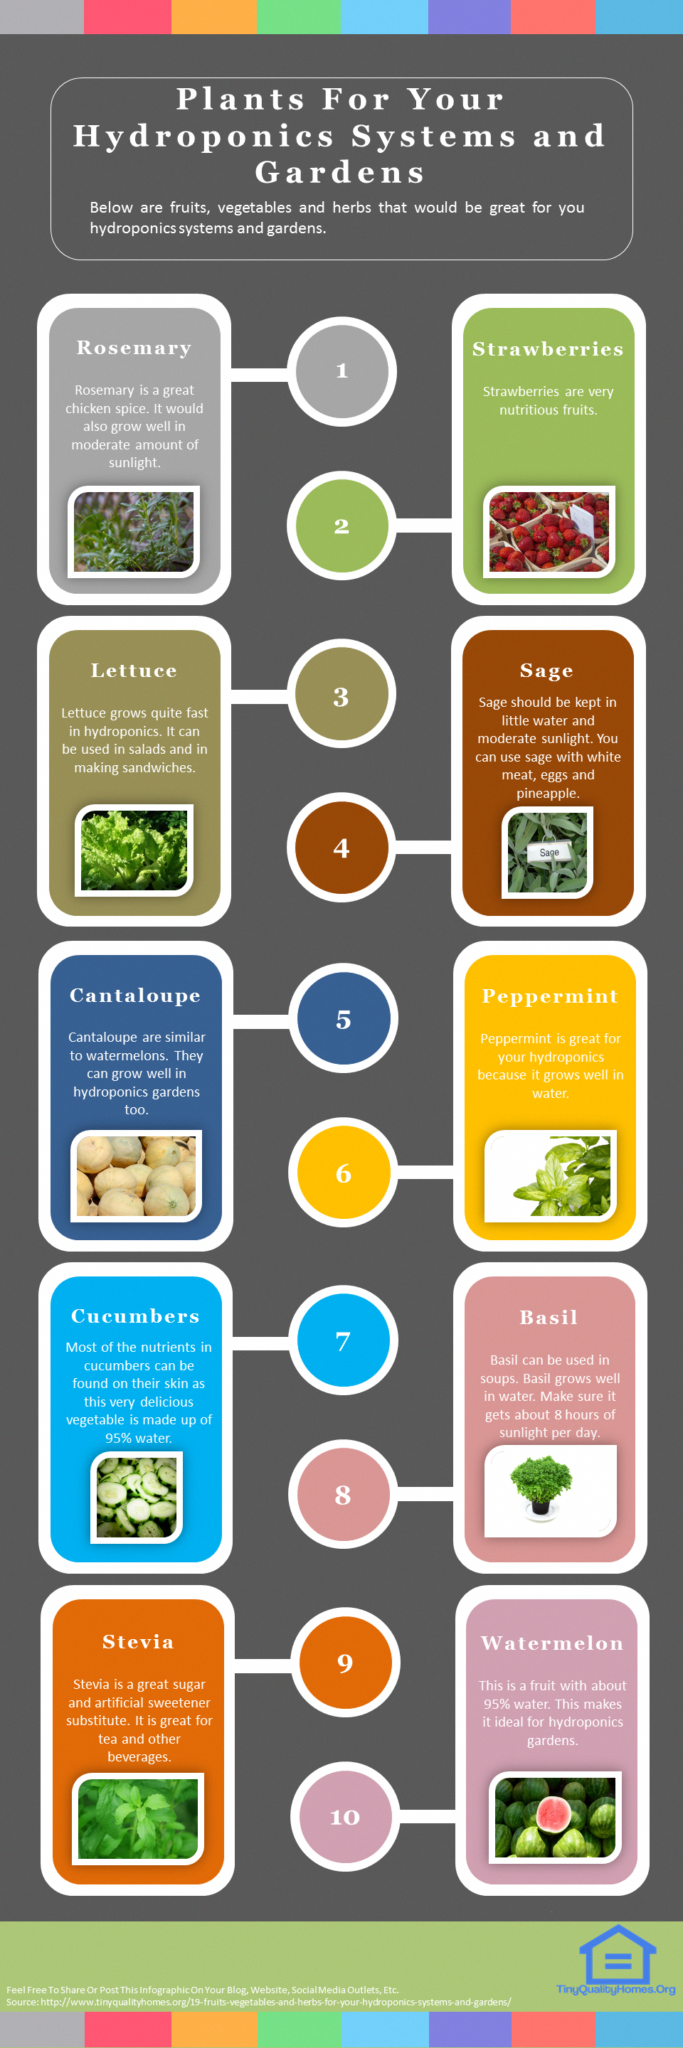 19 Fruits Vegetables And Herbs For Your Hydroponics Systems And Gardens This Guide Shows The Followi Natural Home Remedies Home Remedies Varicose Vein Remedy